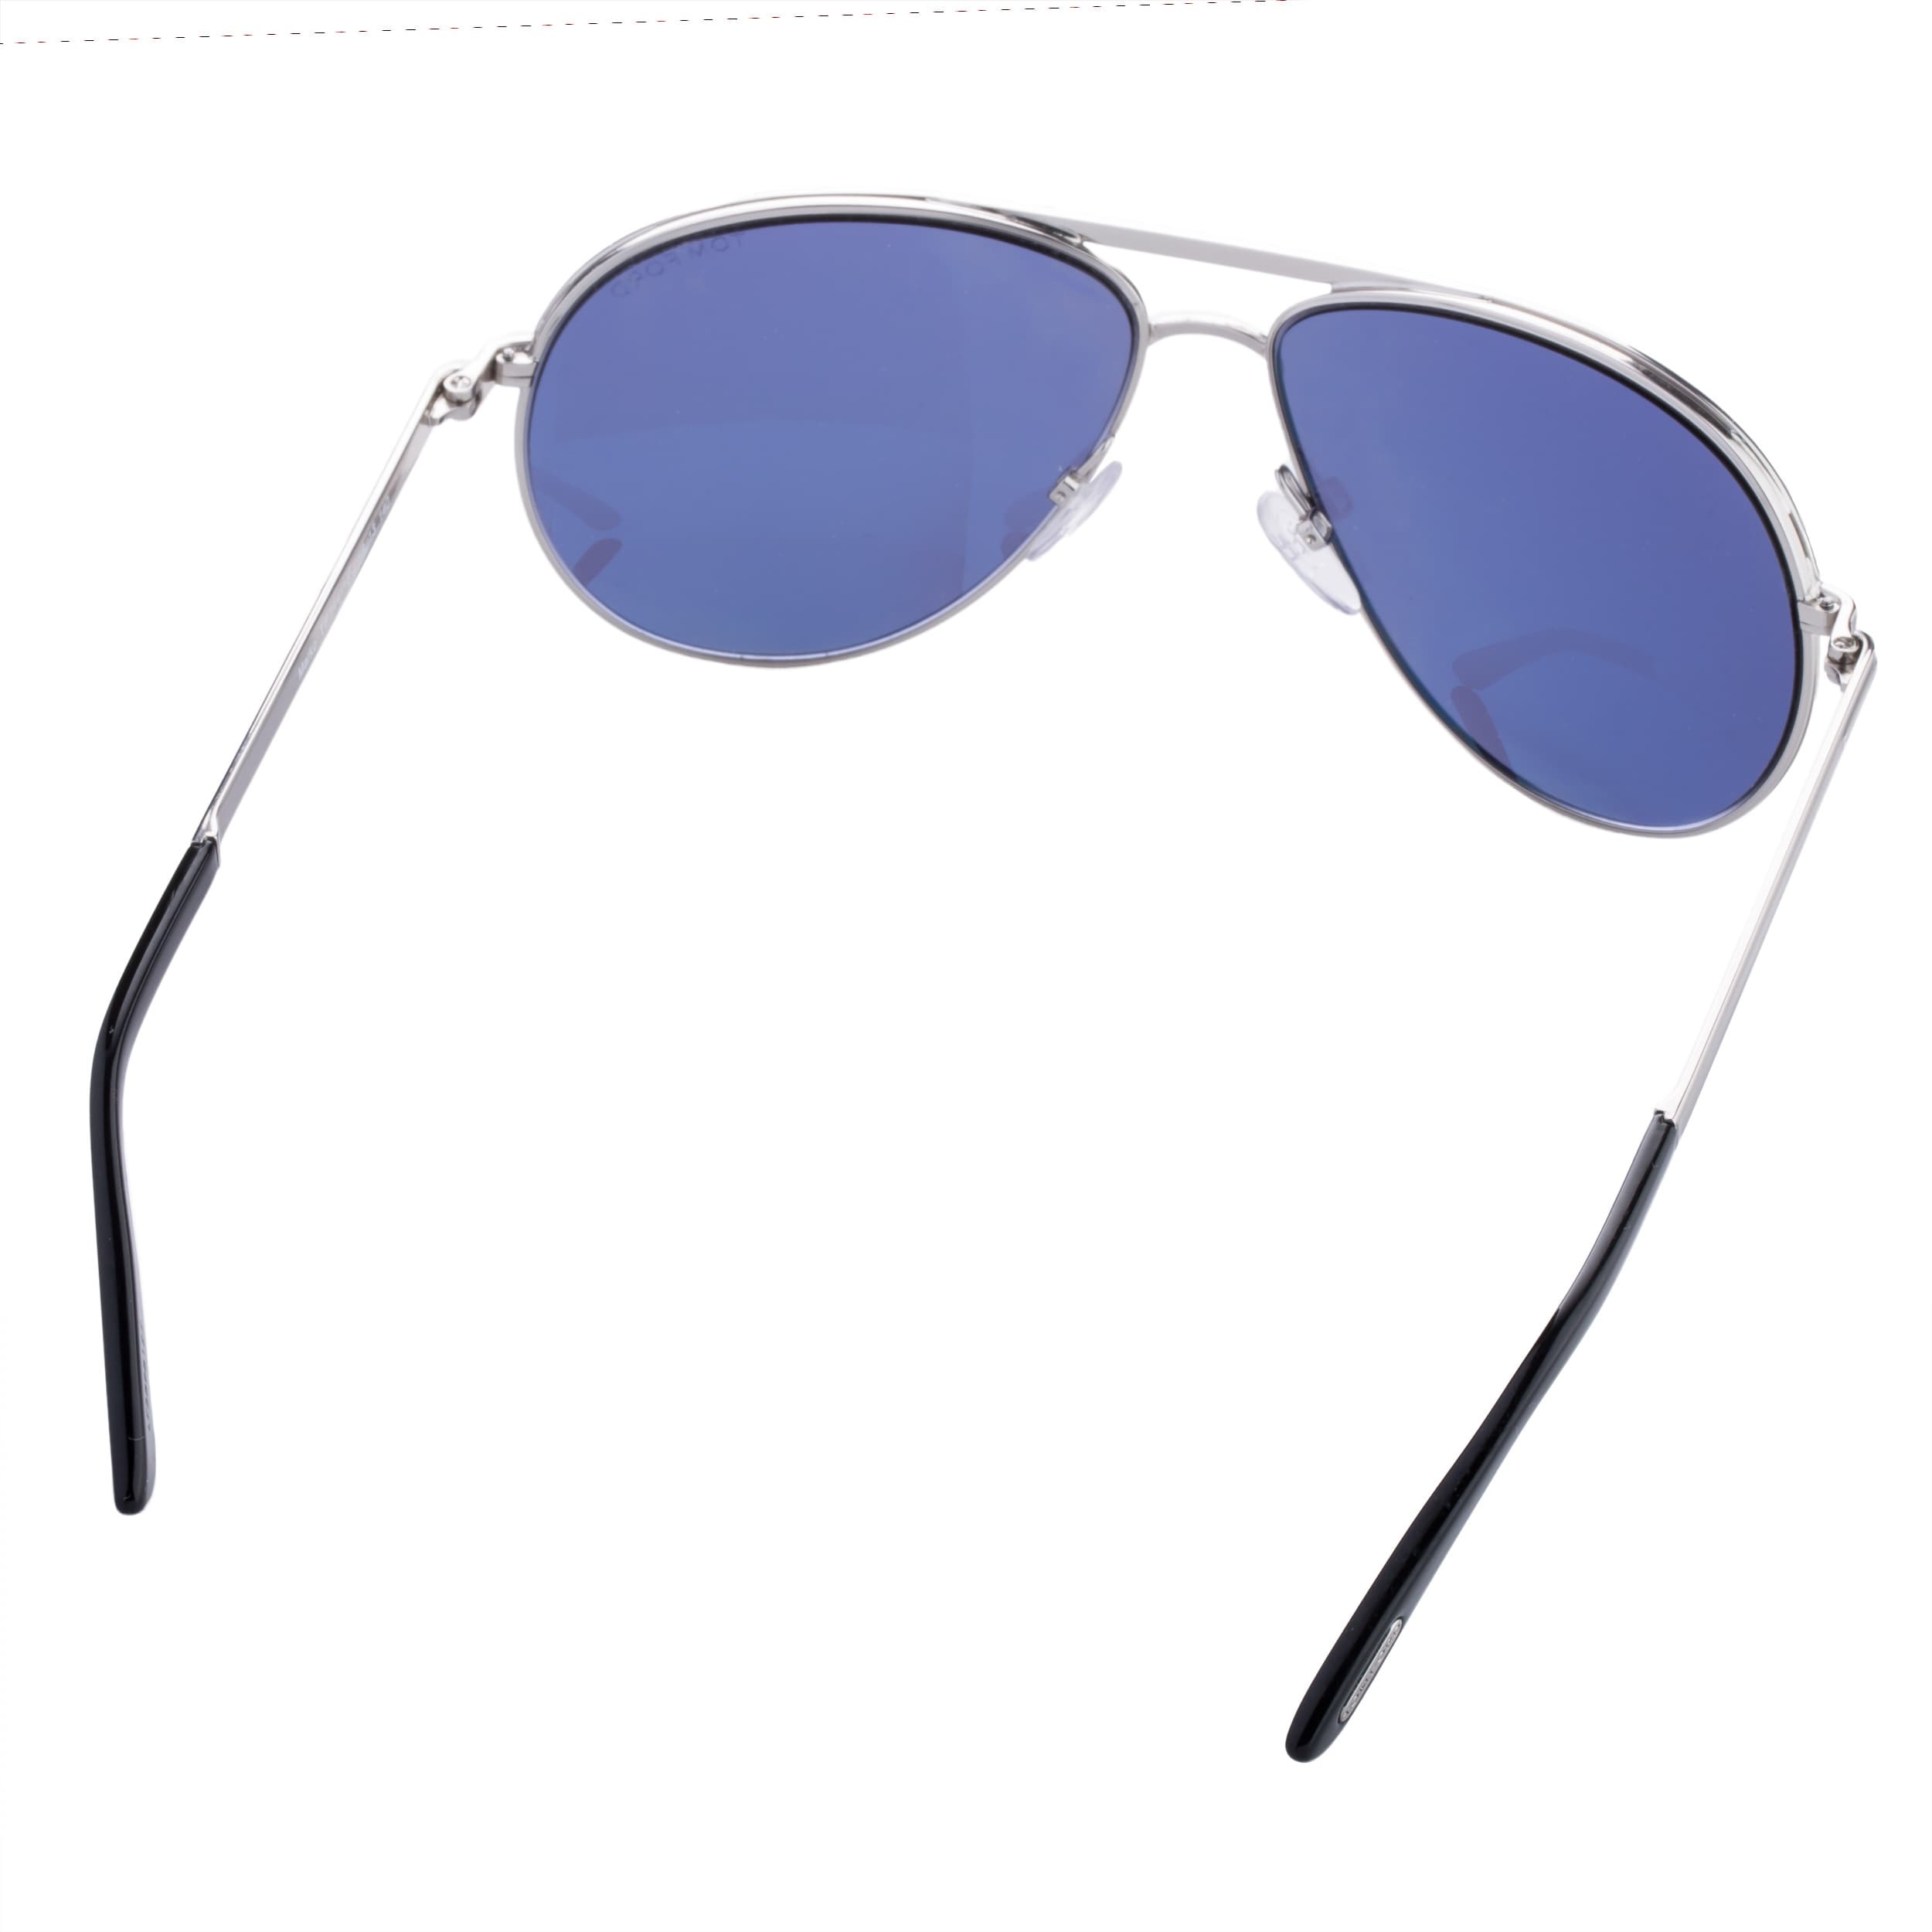 a74ccbb419f Shop Tom Ford Marko TF144 18V Unisex Silver Frame Blue Lens Aviator  Sunglasses - Free Shipping Today - Overstock - 9375422